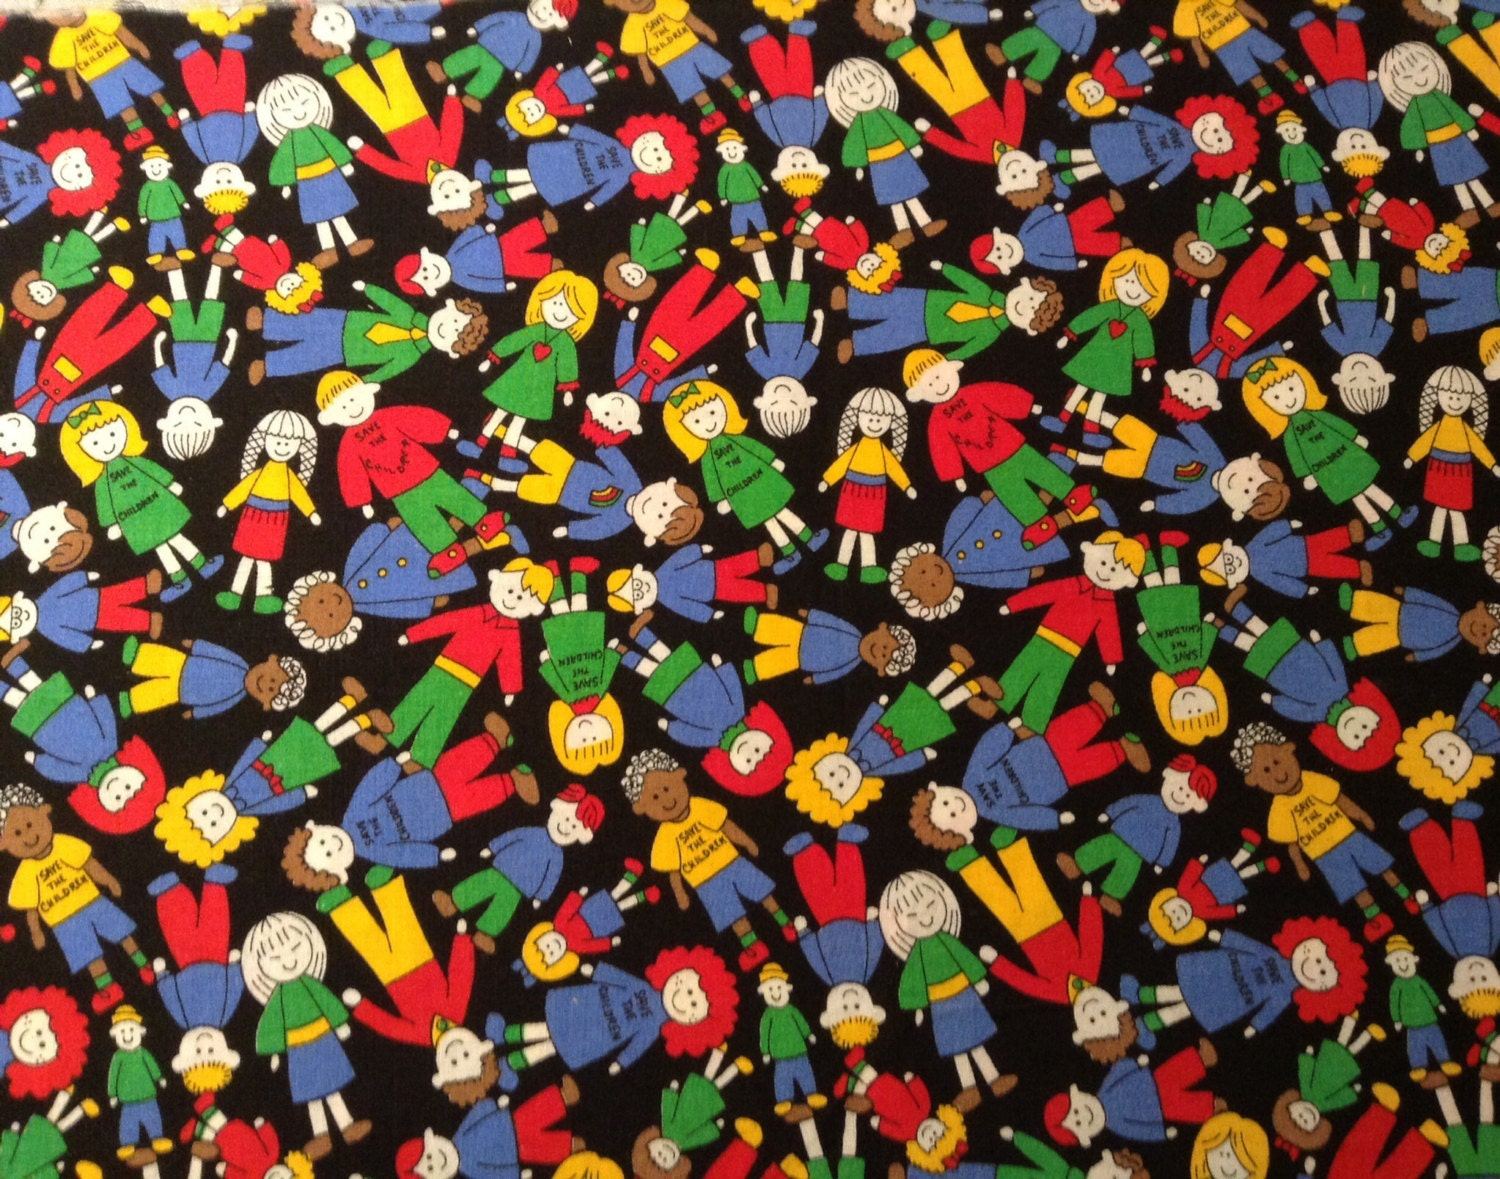 Save the children quilting fabric vintage fabric 1 3 yard for Vintage childrens fabric by the yard